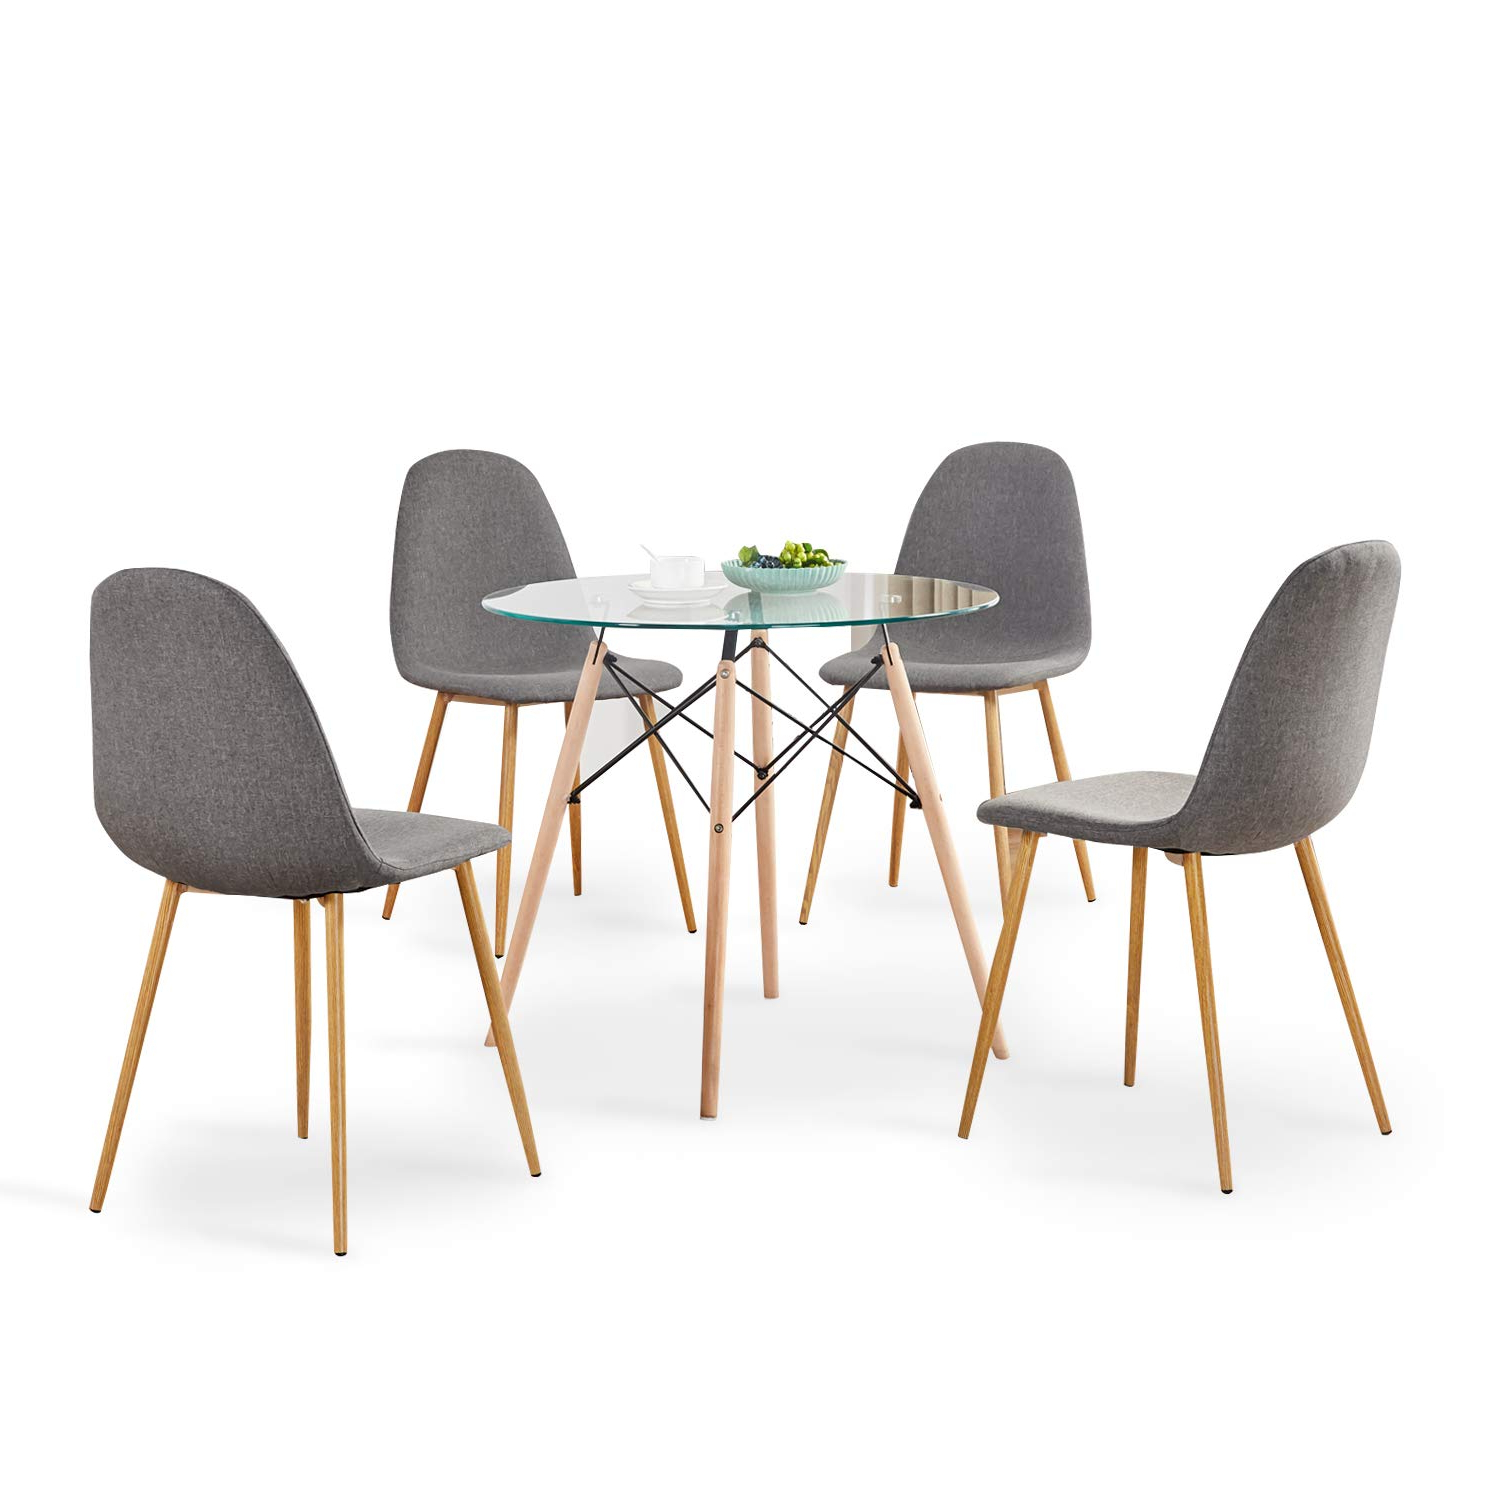 Amazon – Mcombo 5pcs Dining Table Set Round Glass Table Throughout Fashionable Modern Round Glass Top Dining Tables (View 23 of 30)